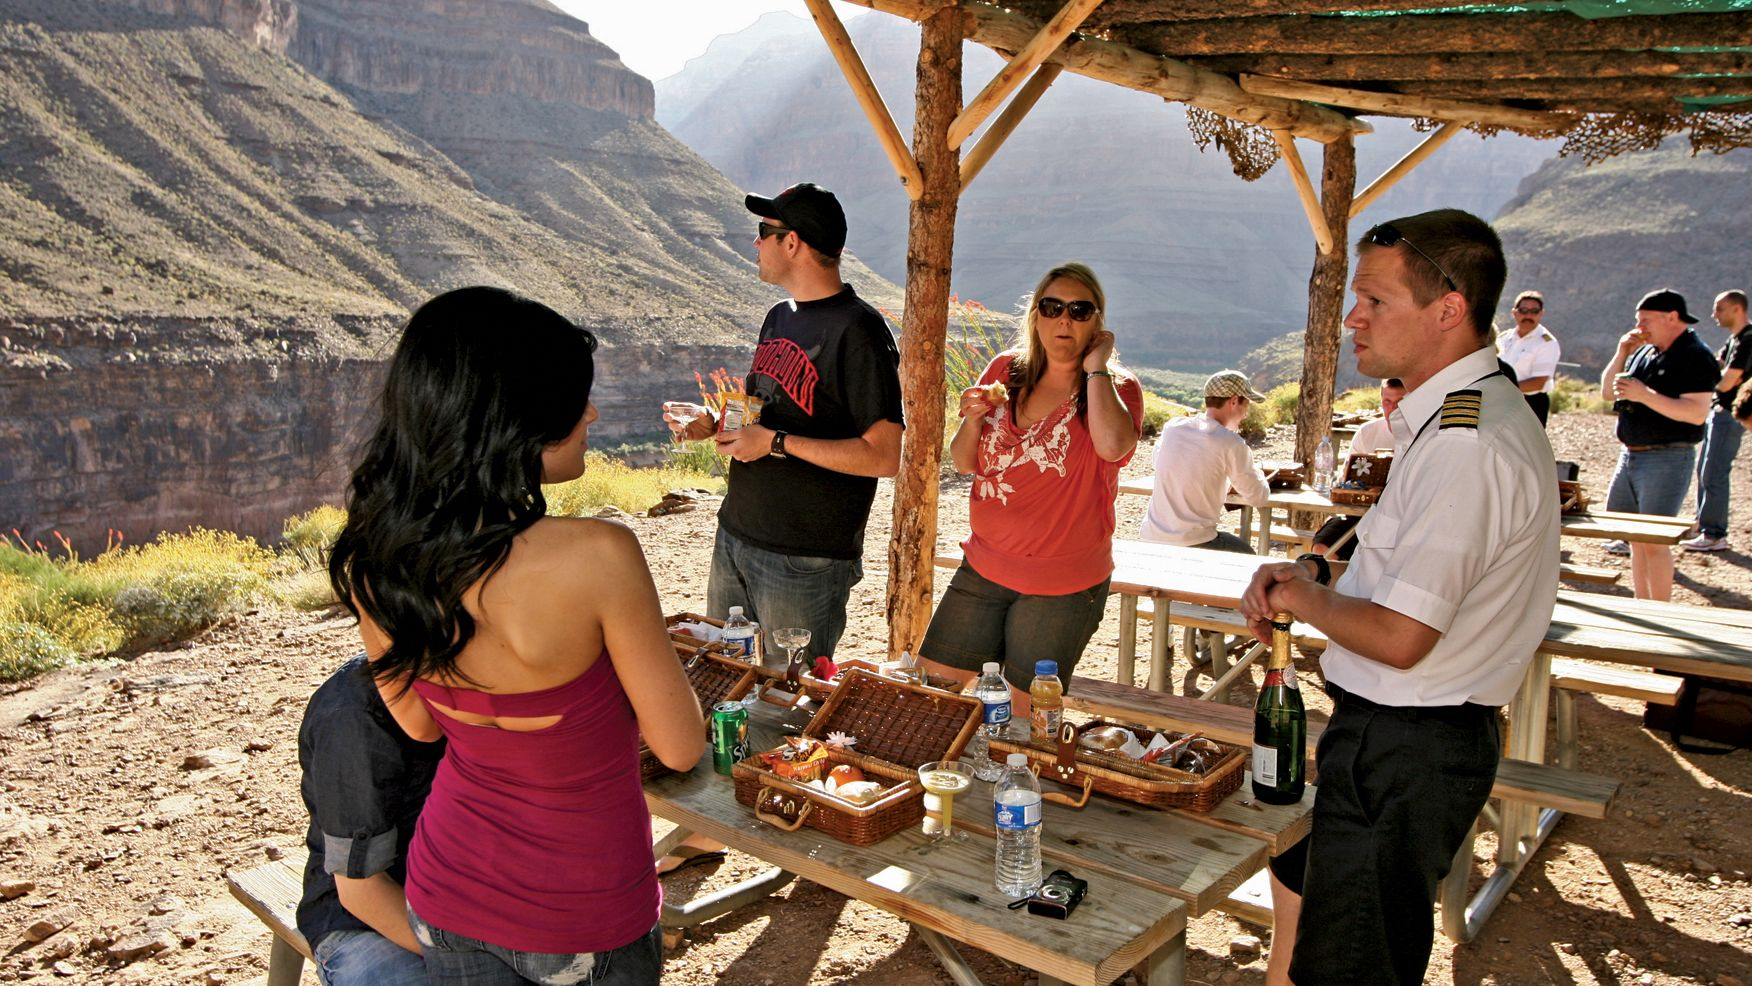 people eating at picnic table in nevada